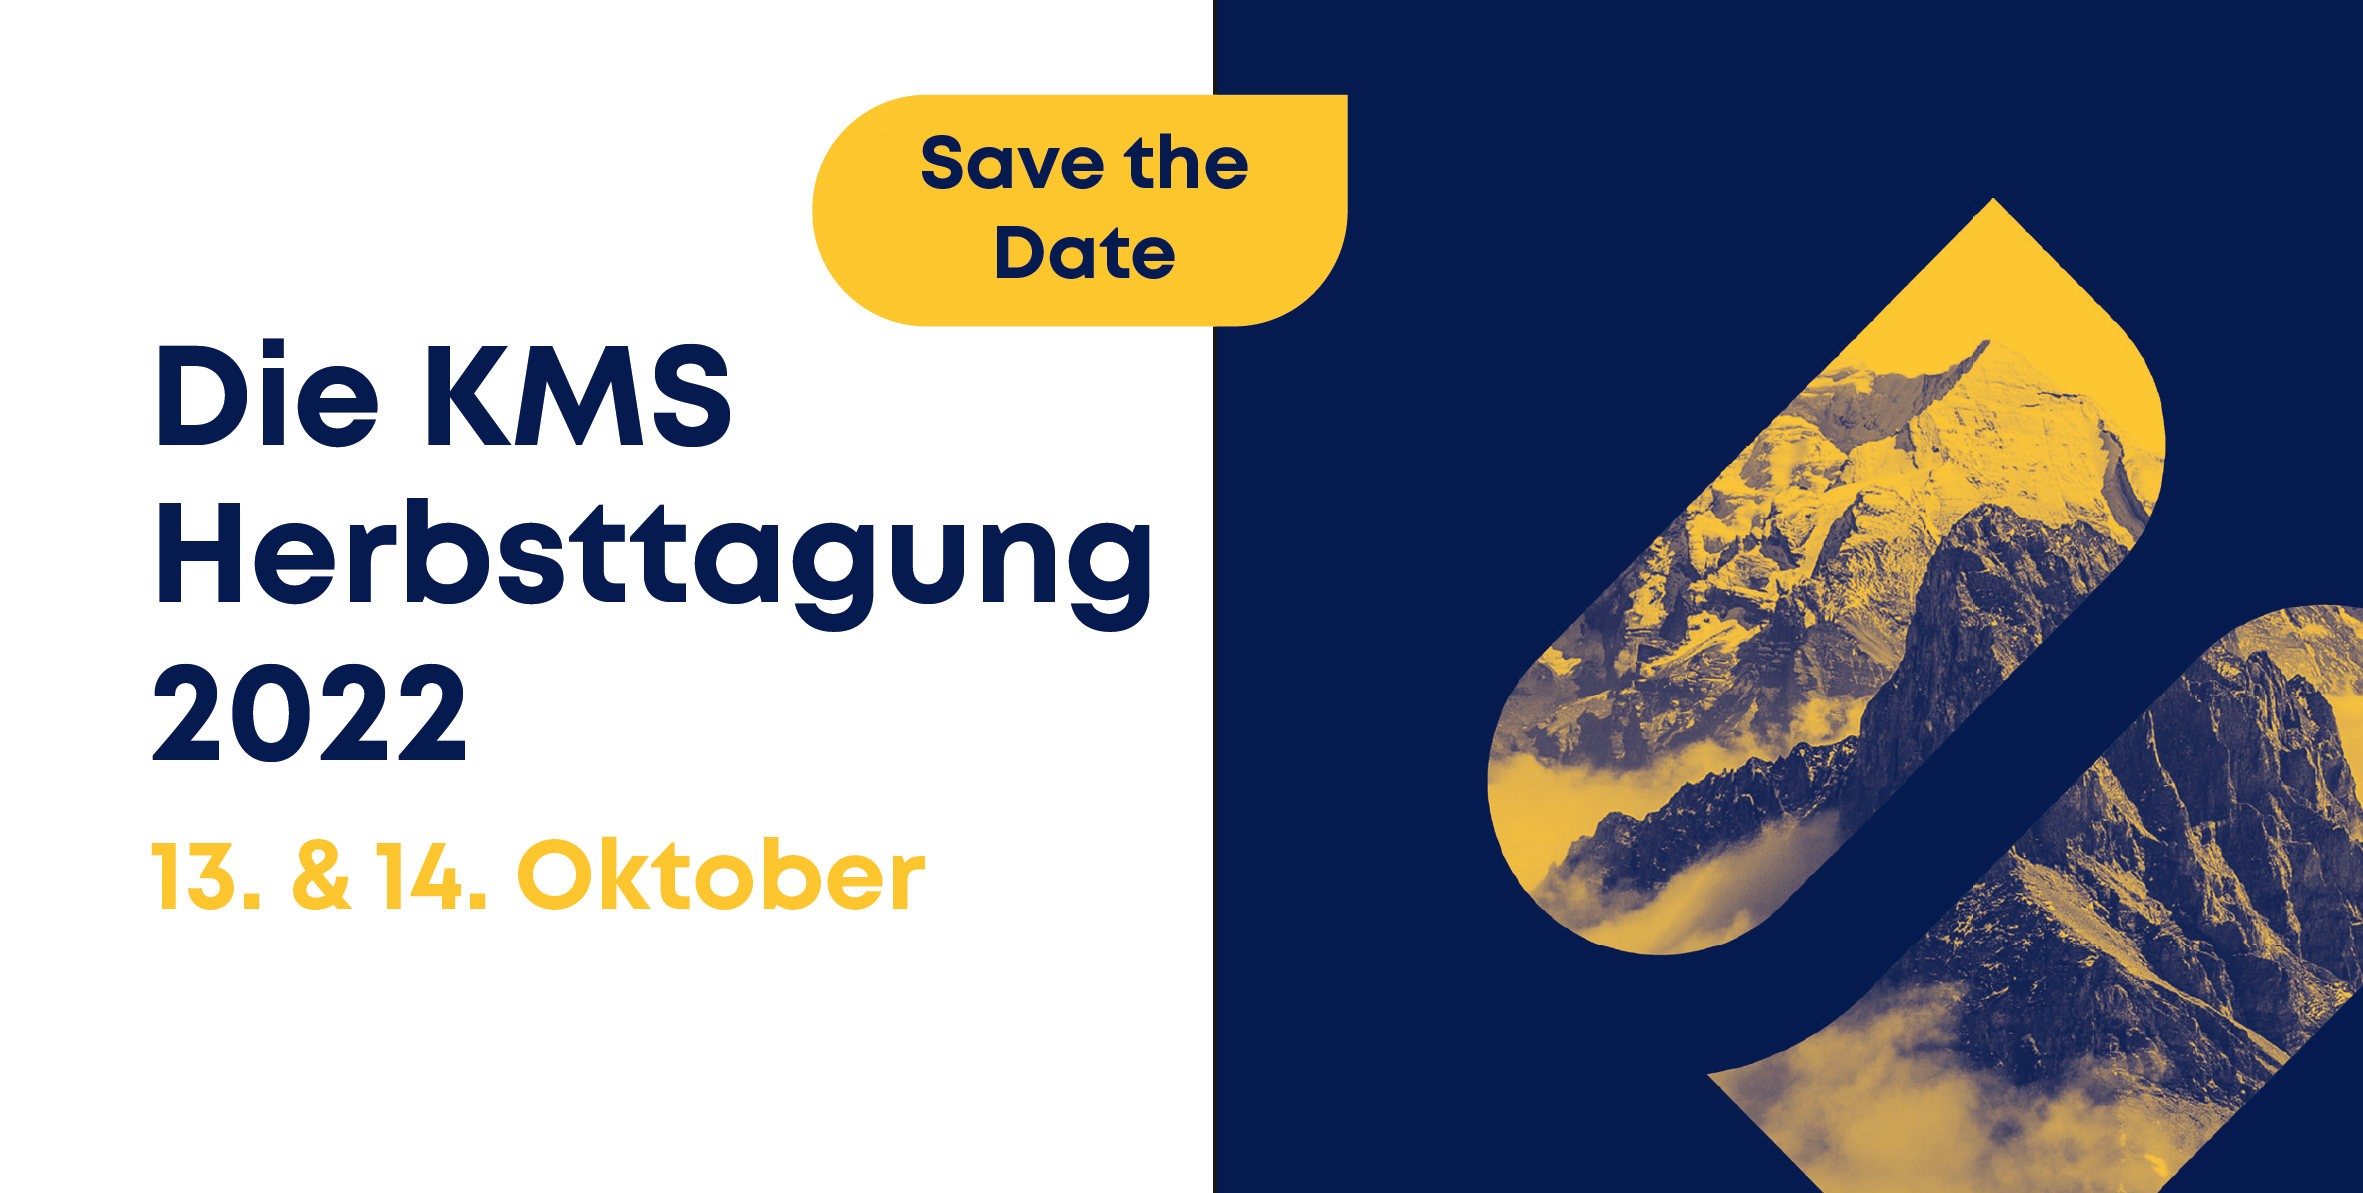 Herbsttagung Save the Date